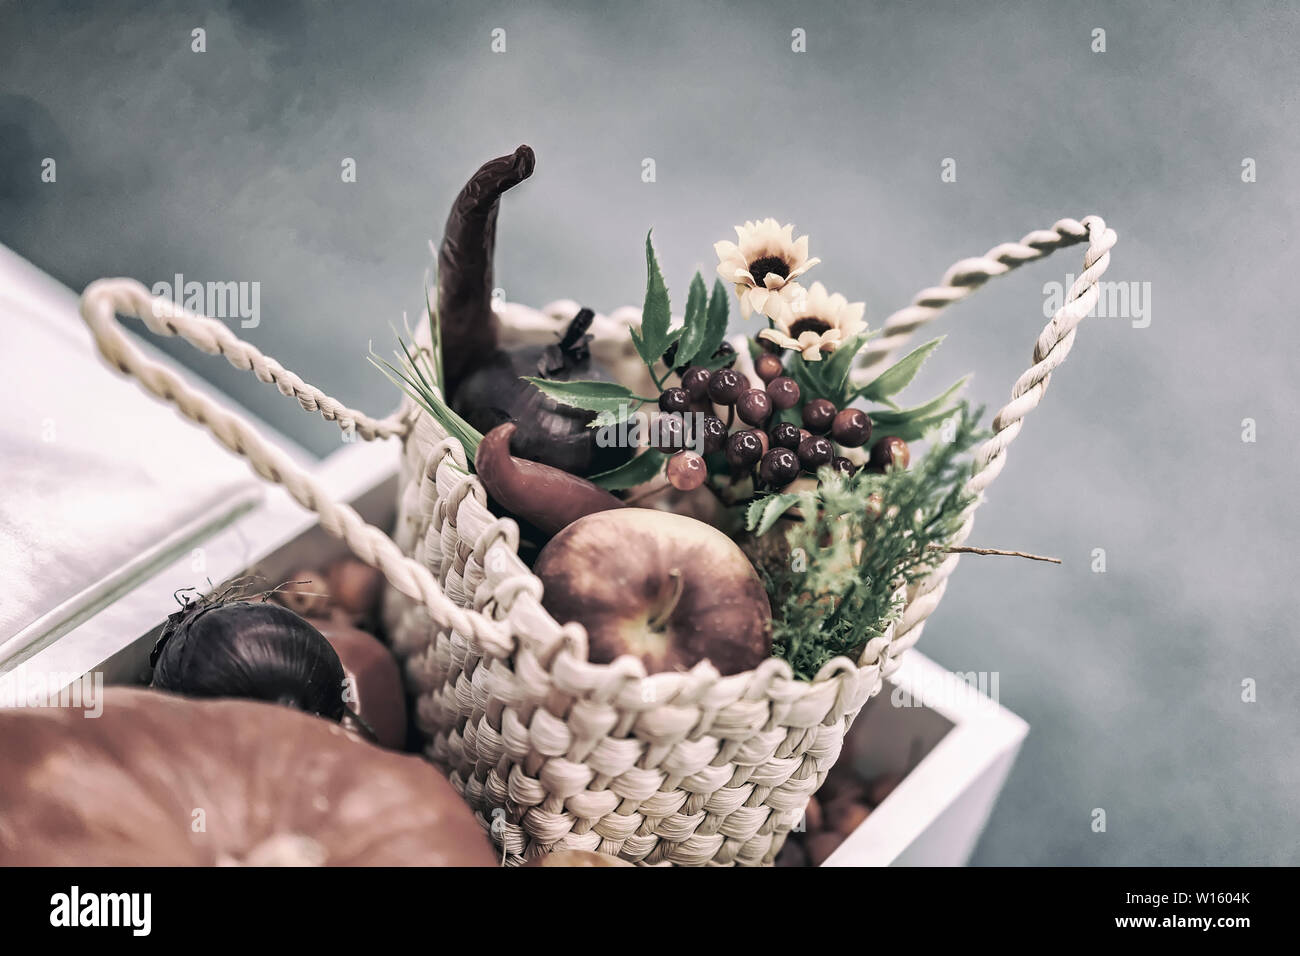 Home festive flower arrangement from leaves, flowers, vegetables, fruits, berries in the rustic wicker basket. Autumn holidays Stock Photo